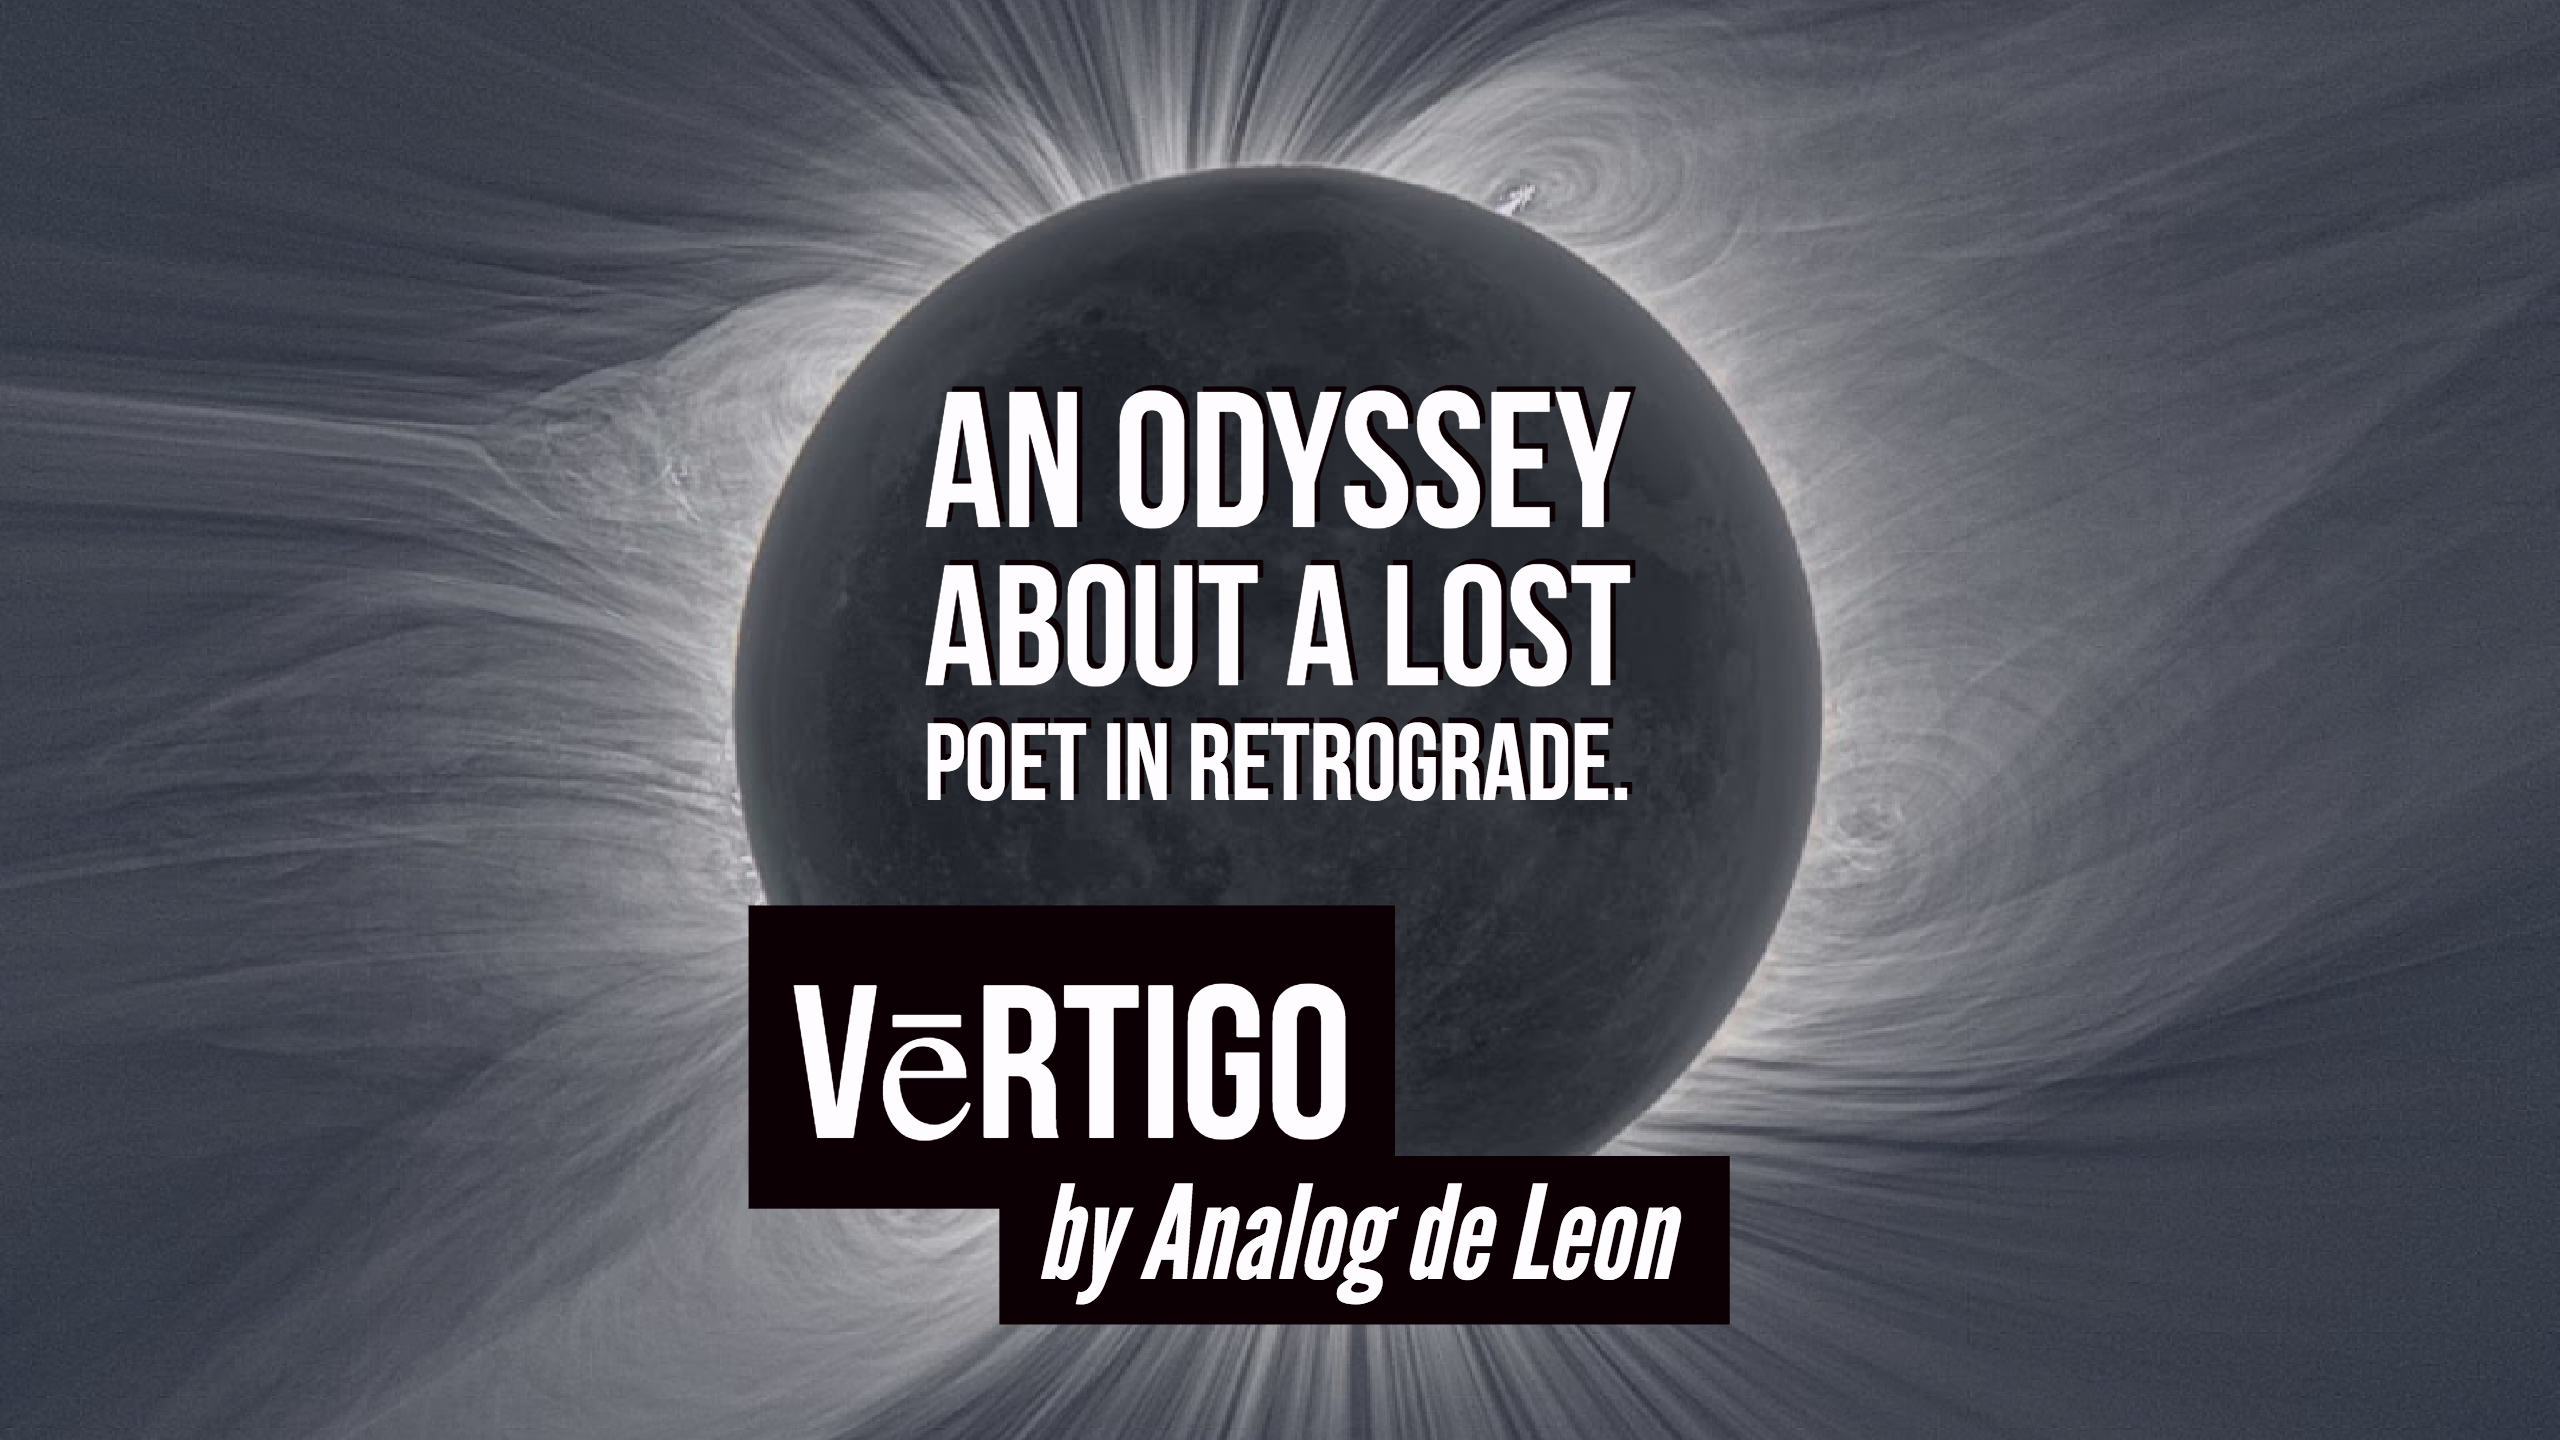 poems poet Analog de leon poetry vertigo chris purifoy love resist lost poets